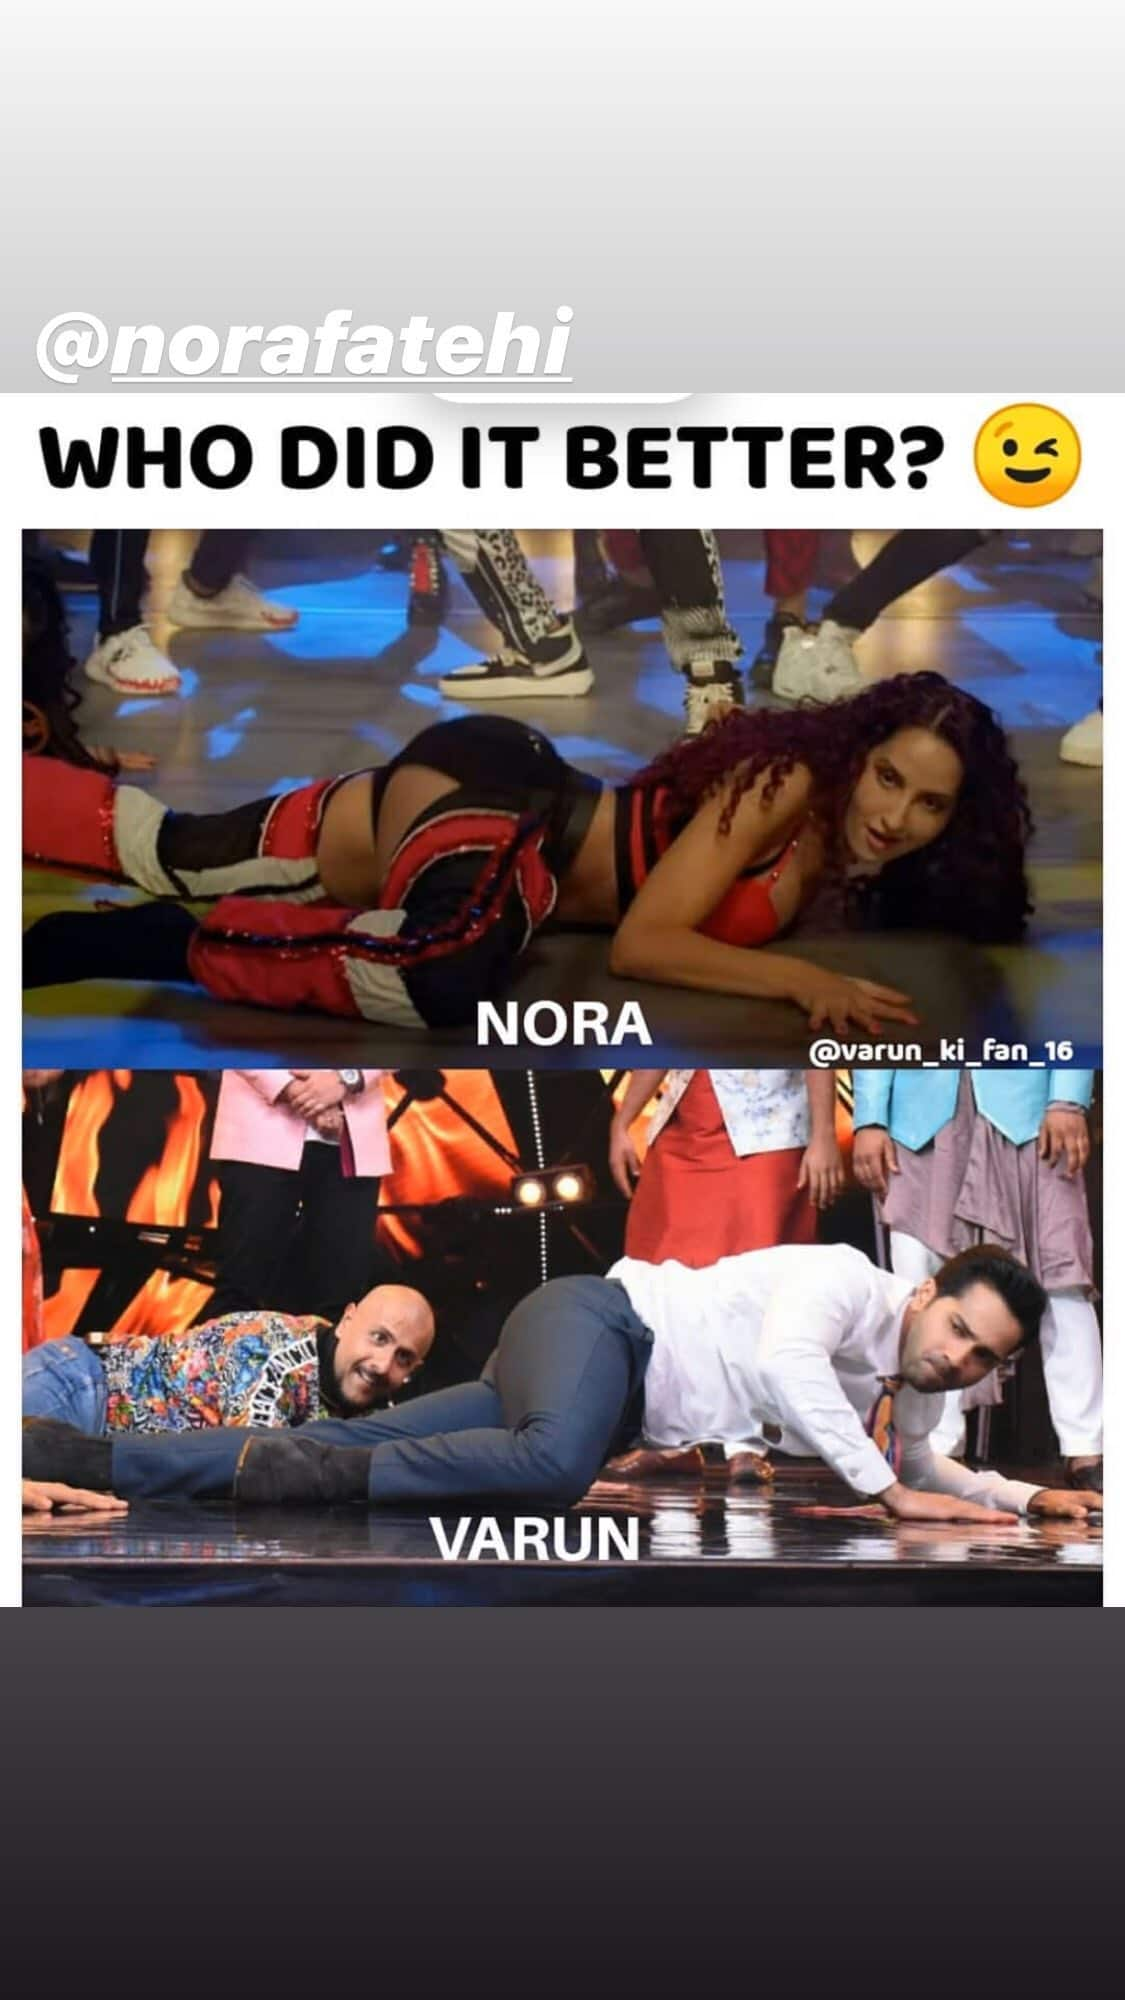 Varun Dhawan Gives Nora Fatehi's 'Garmi' Moves A Hilarious Twist With Indian Idol Judge Vishal Dadlani, Asks 'Who Did It Better?'